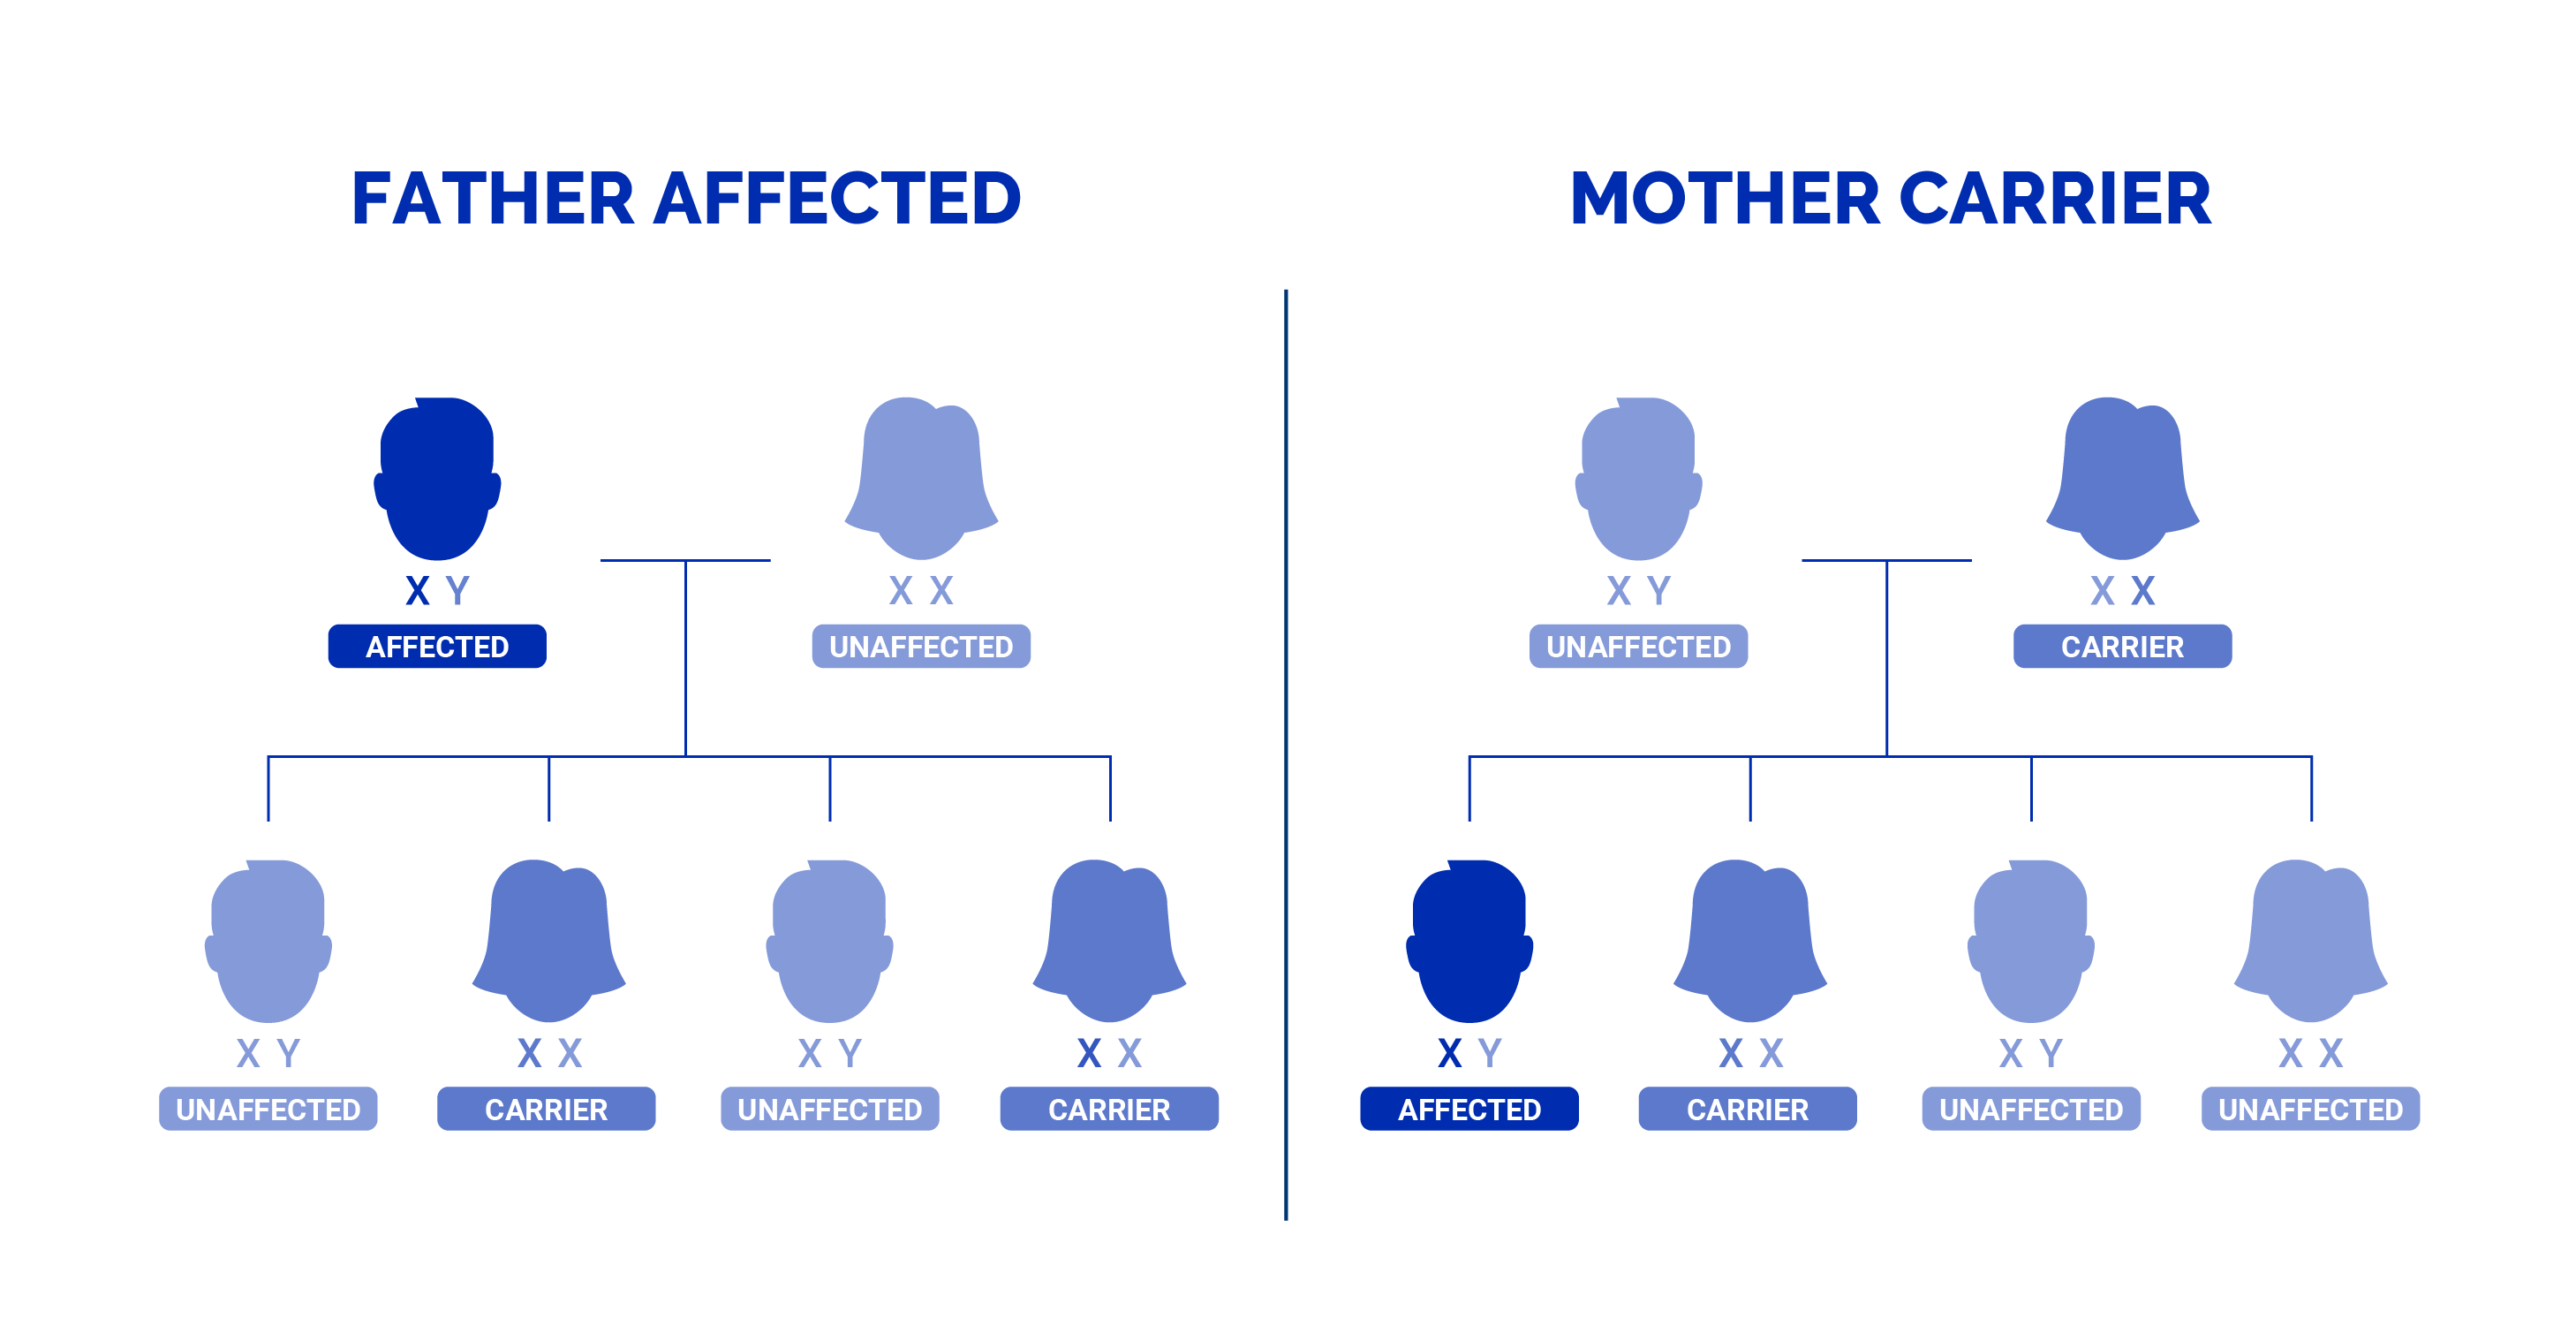 A family tree showing the X-linked recessive inheritance pattern of duchenne and becker muscular dystrophy.